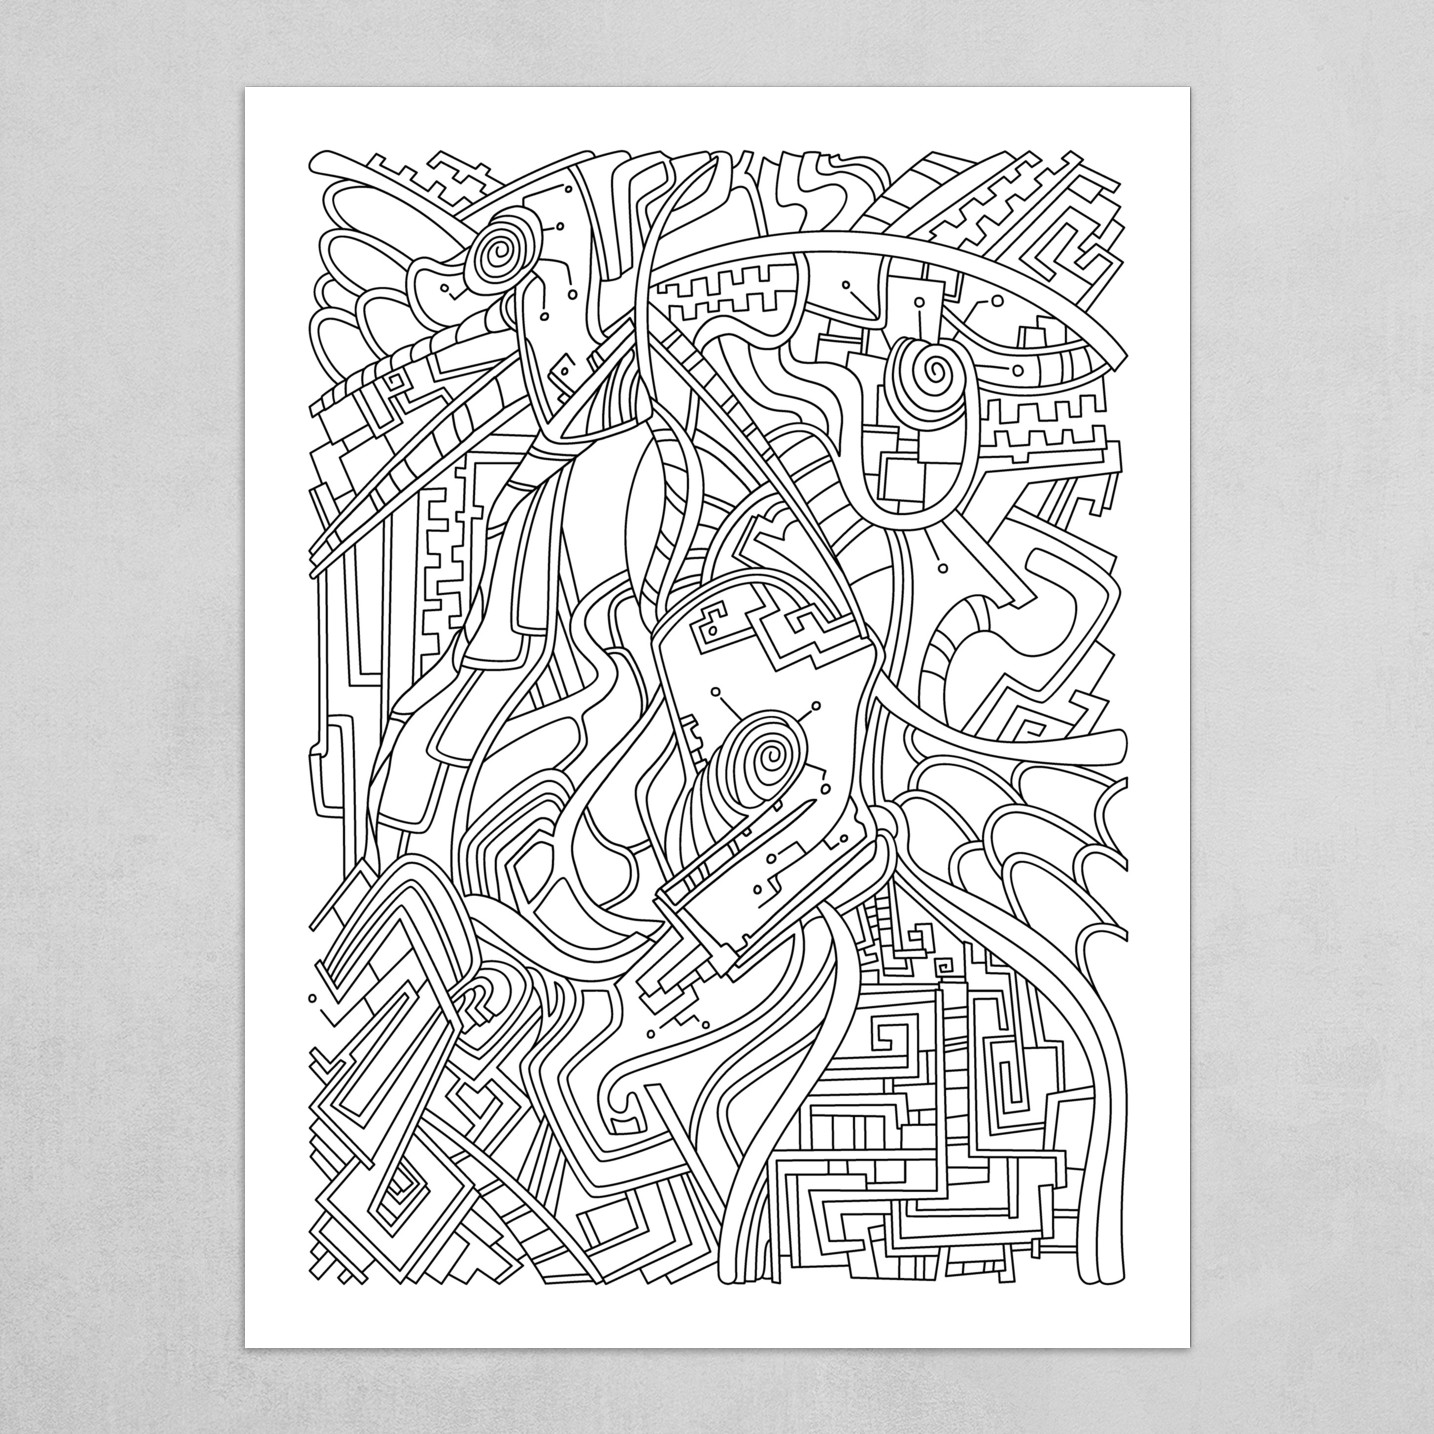 Wandering Abstract Line Art 44: Black & White